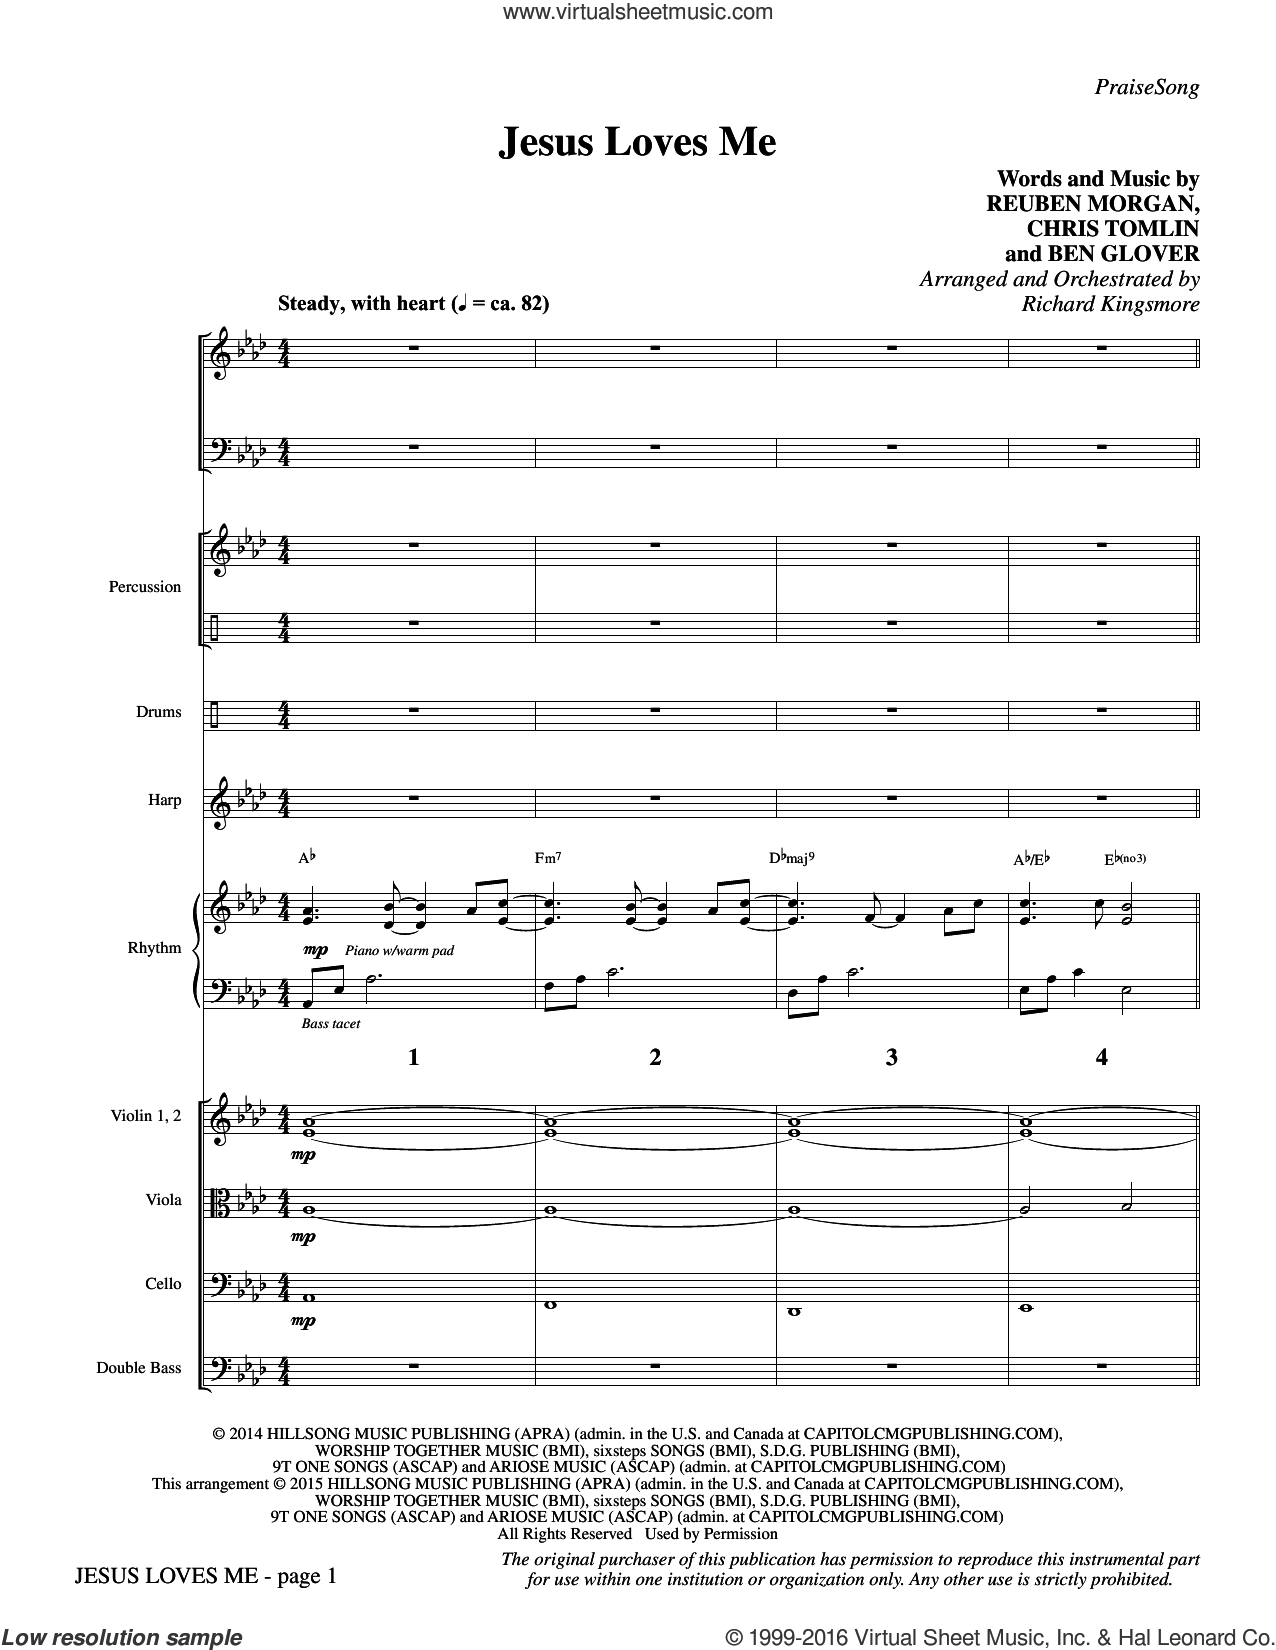 Jesus Loves Me (COMPLETE) sheet music for orchestra by Reuben Morgan, Richard Kingsmore, Ben Glover and Chris Tomlin. Score Image Preview.